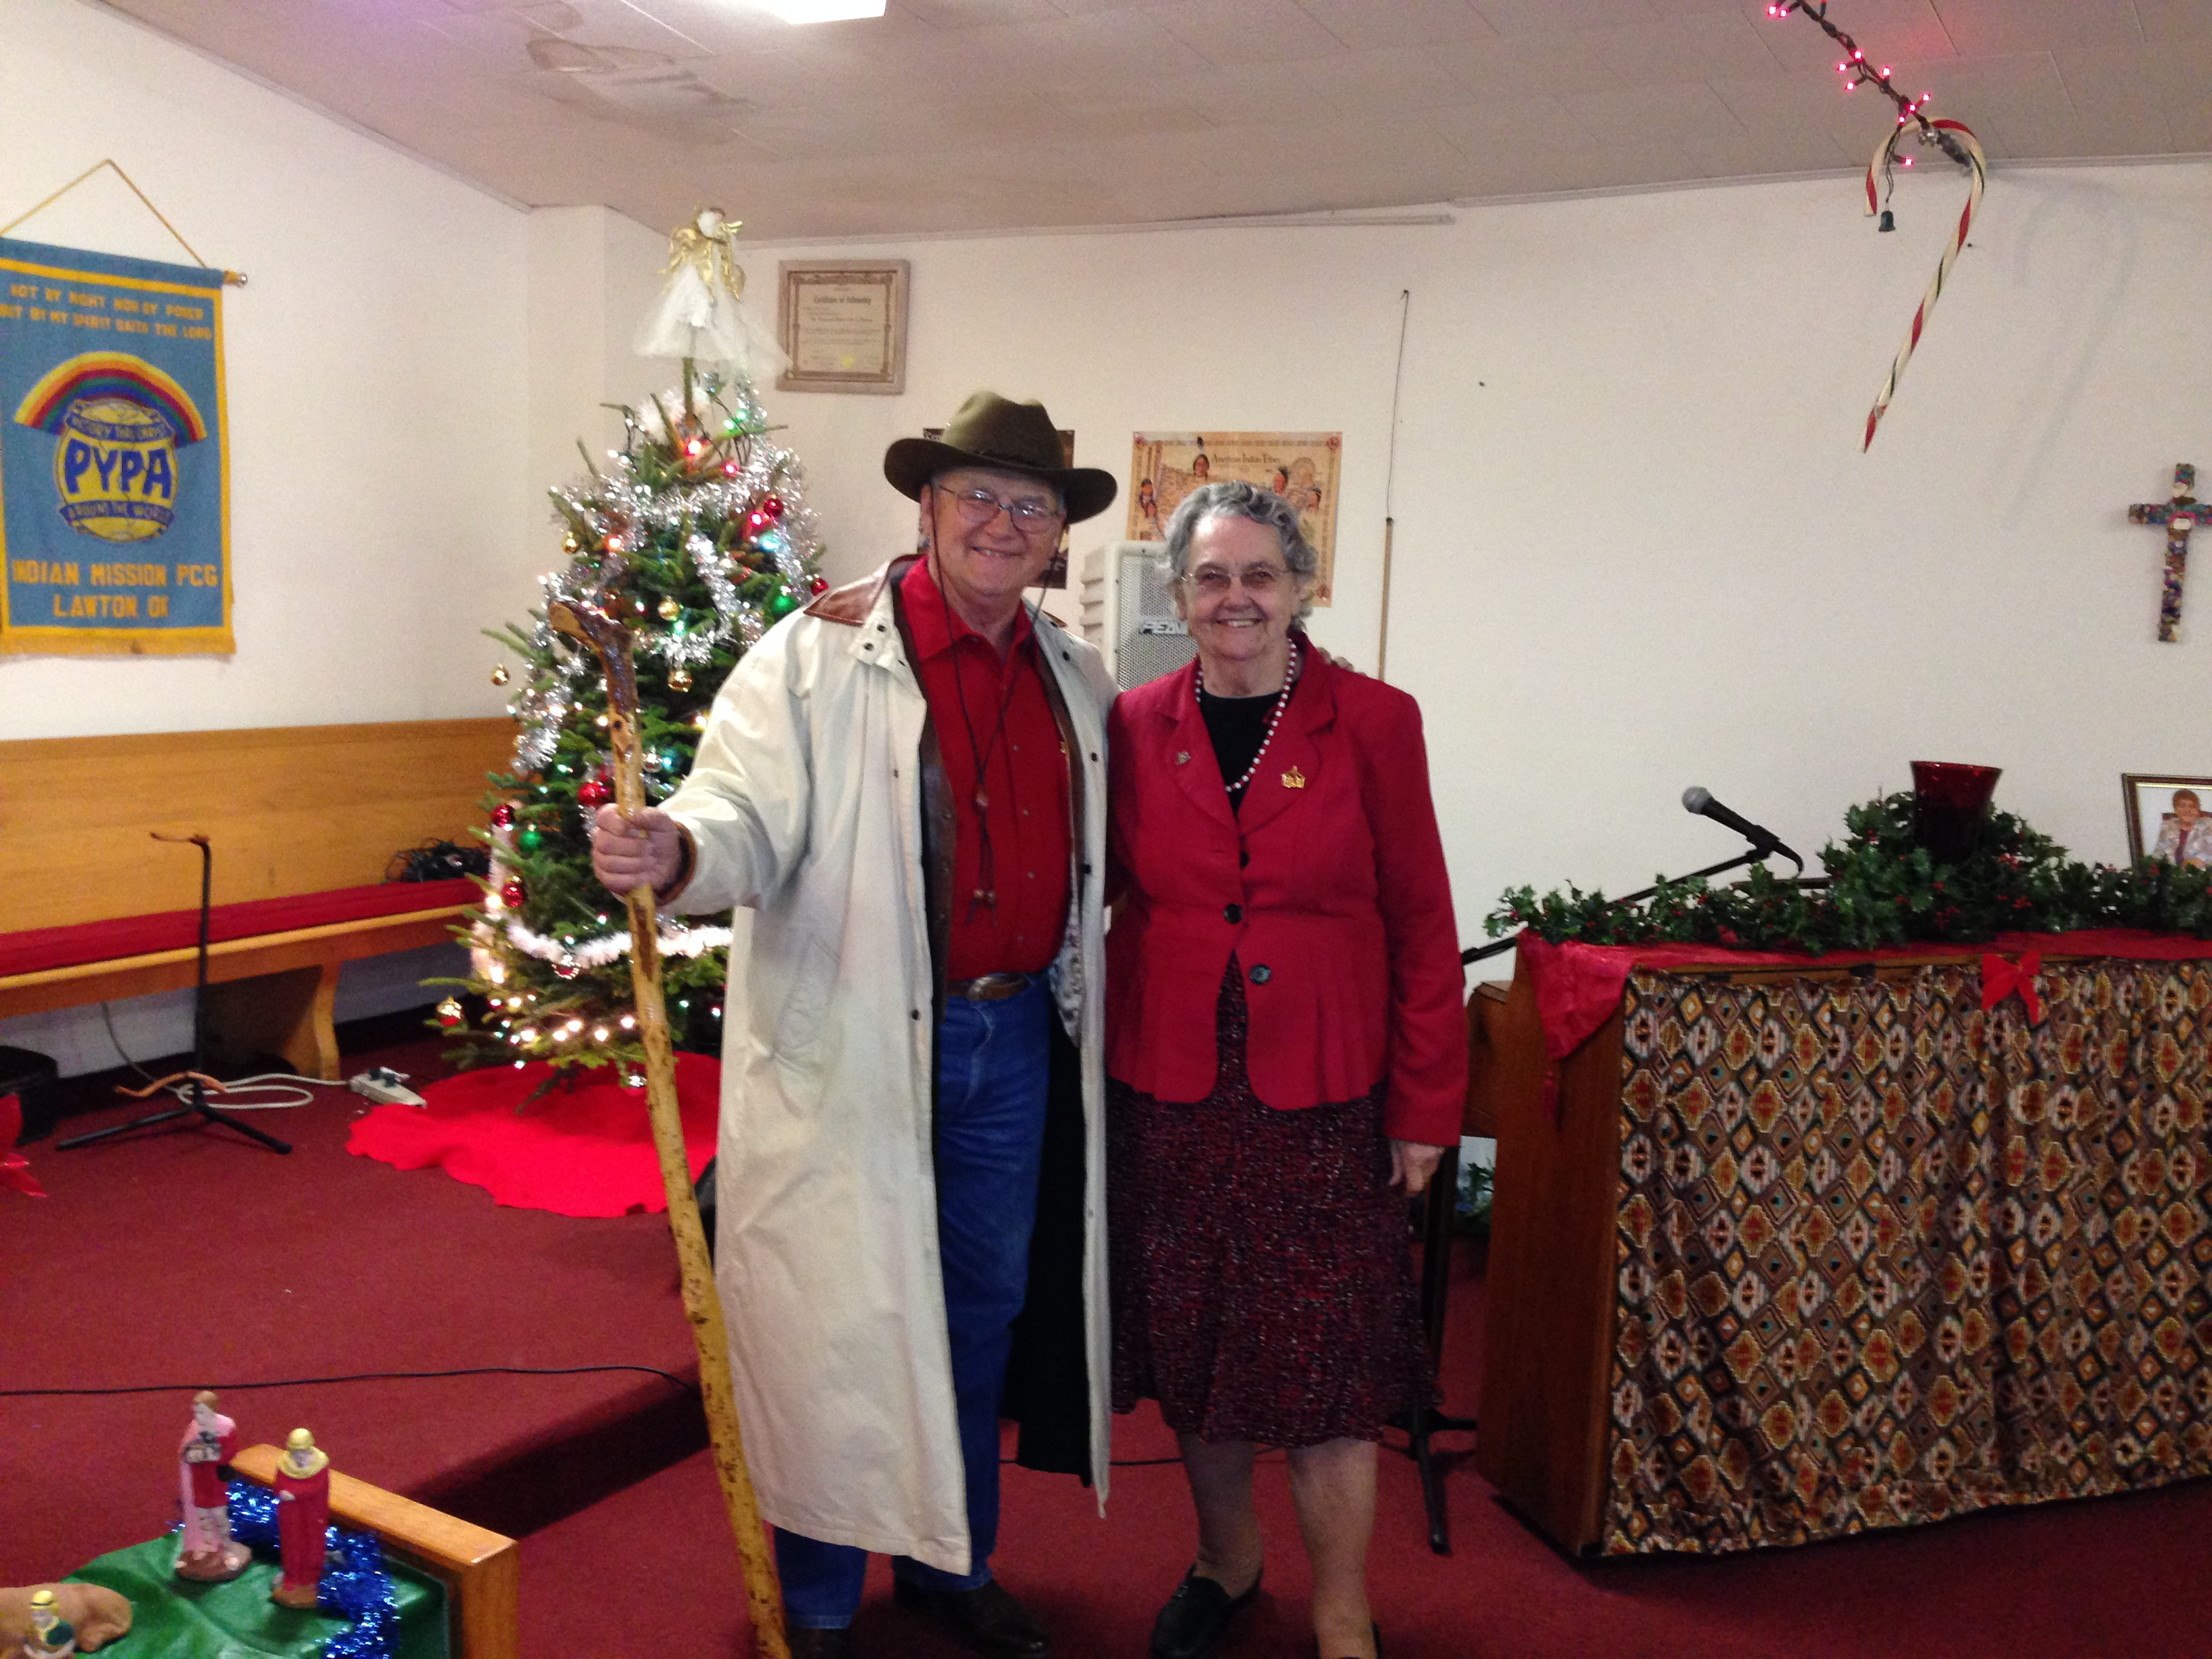 John Gifford and Sister Norma Walker